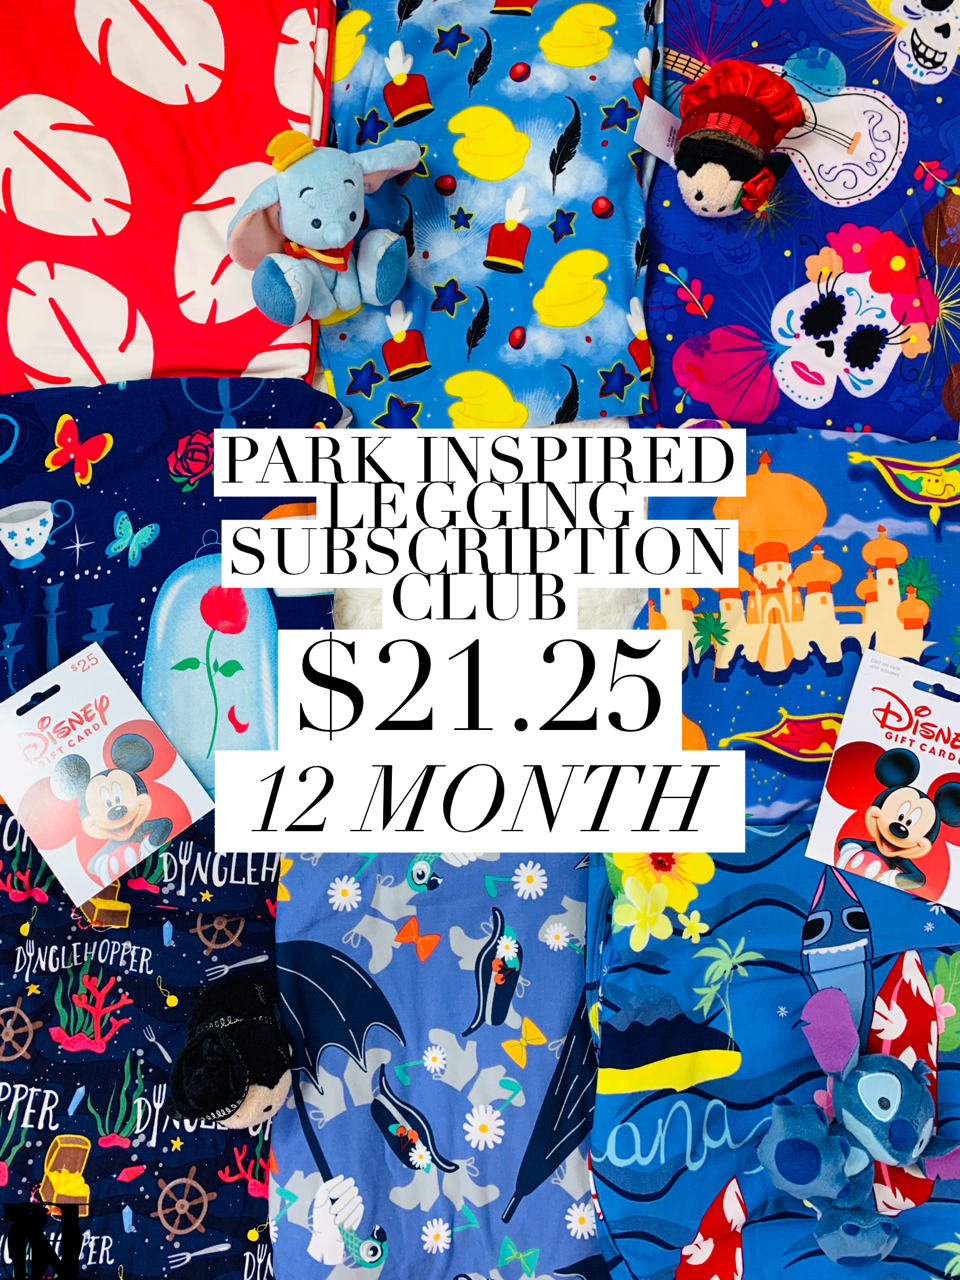 Park Inspired Leggings Subscription Club - 12 Month Subscription